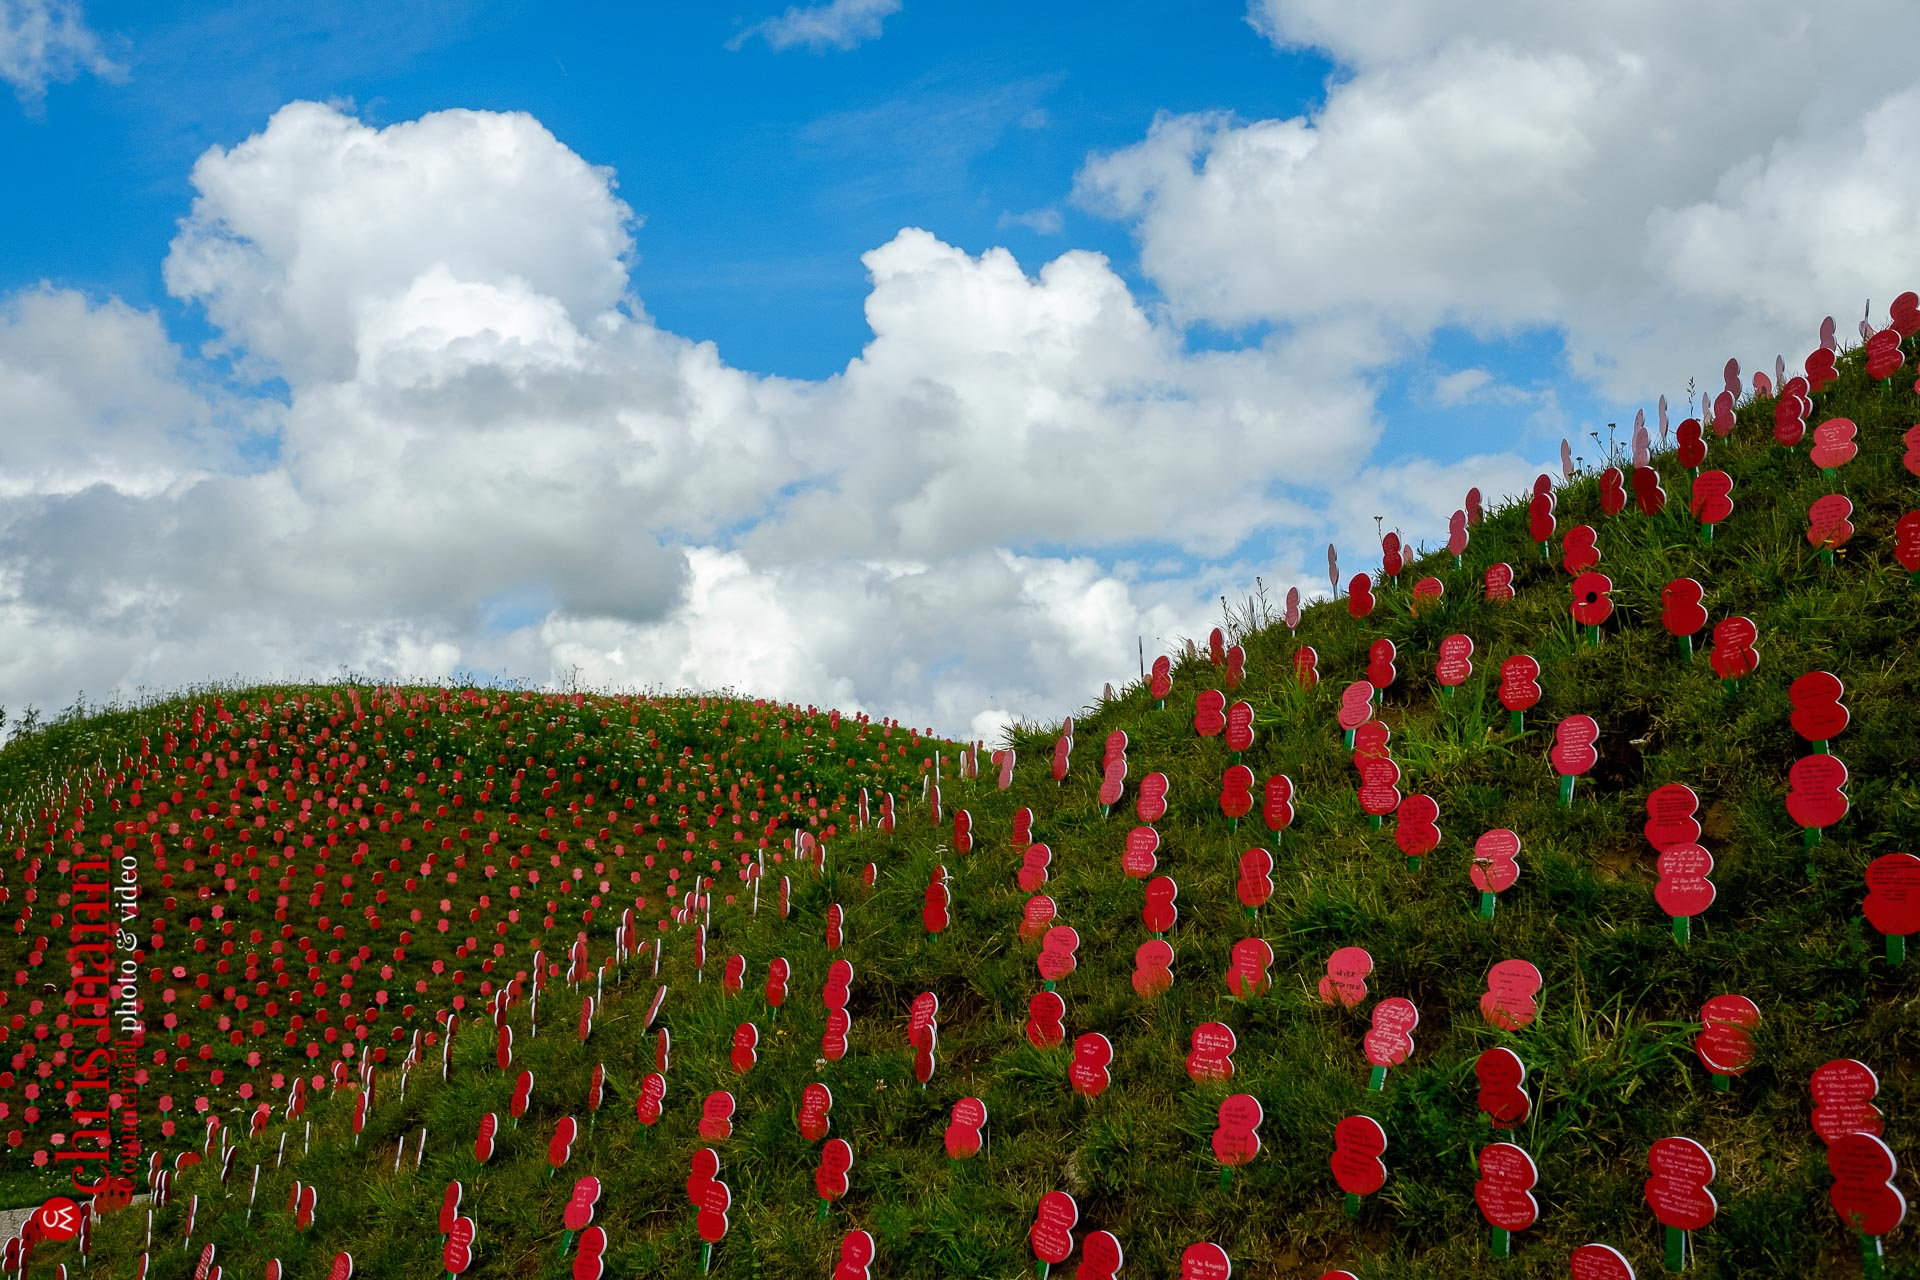 afield of remembrance poppies at Thiepval Battle of the Somme 100th Anniversary